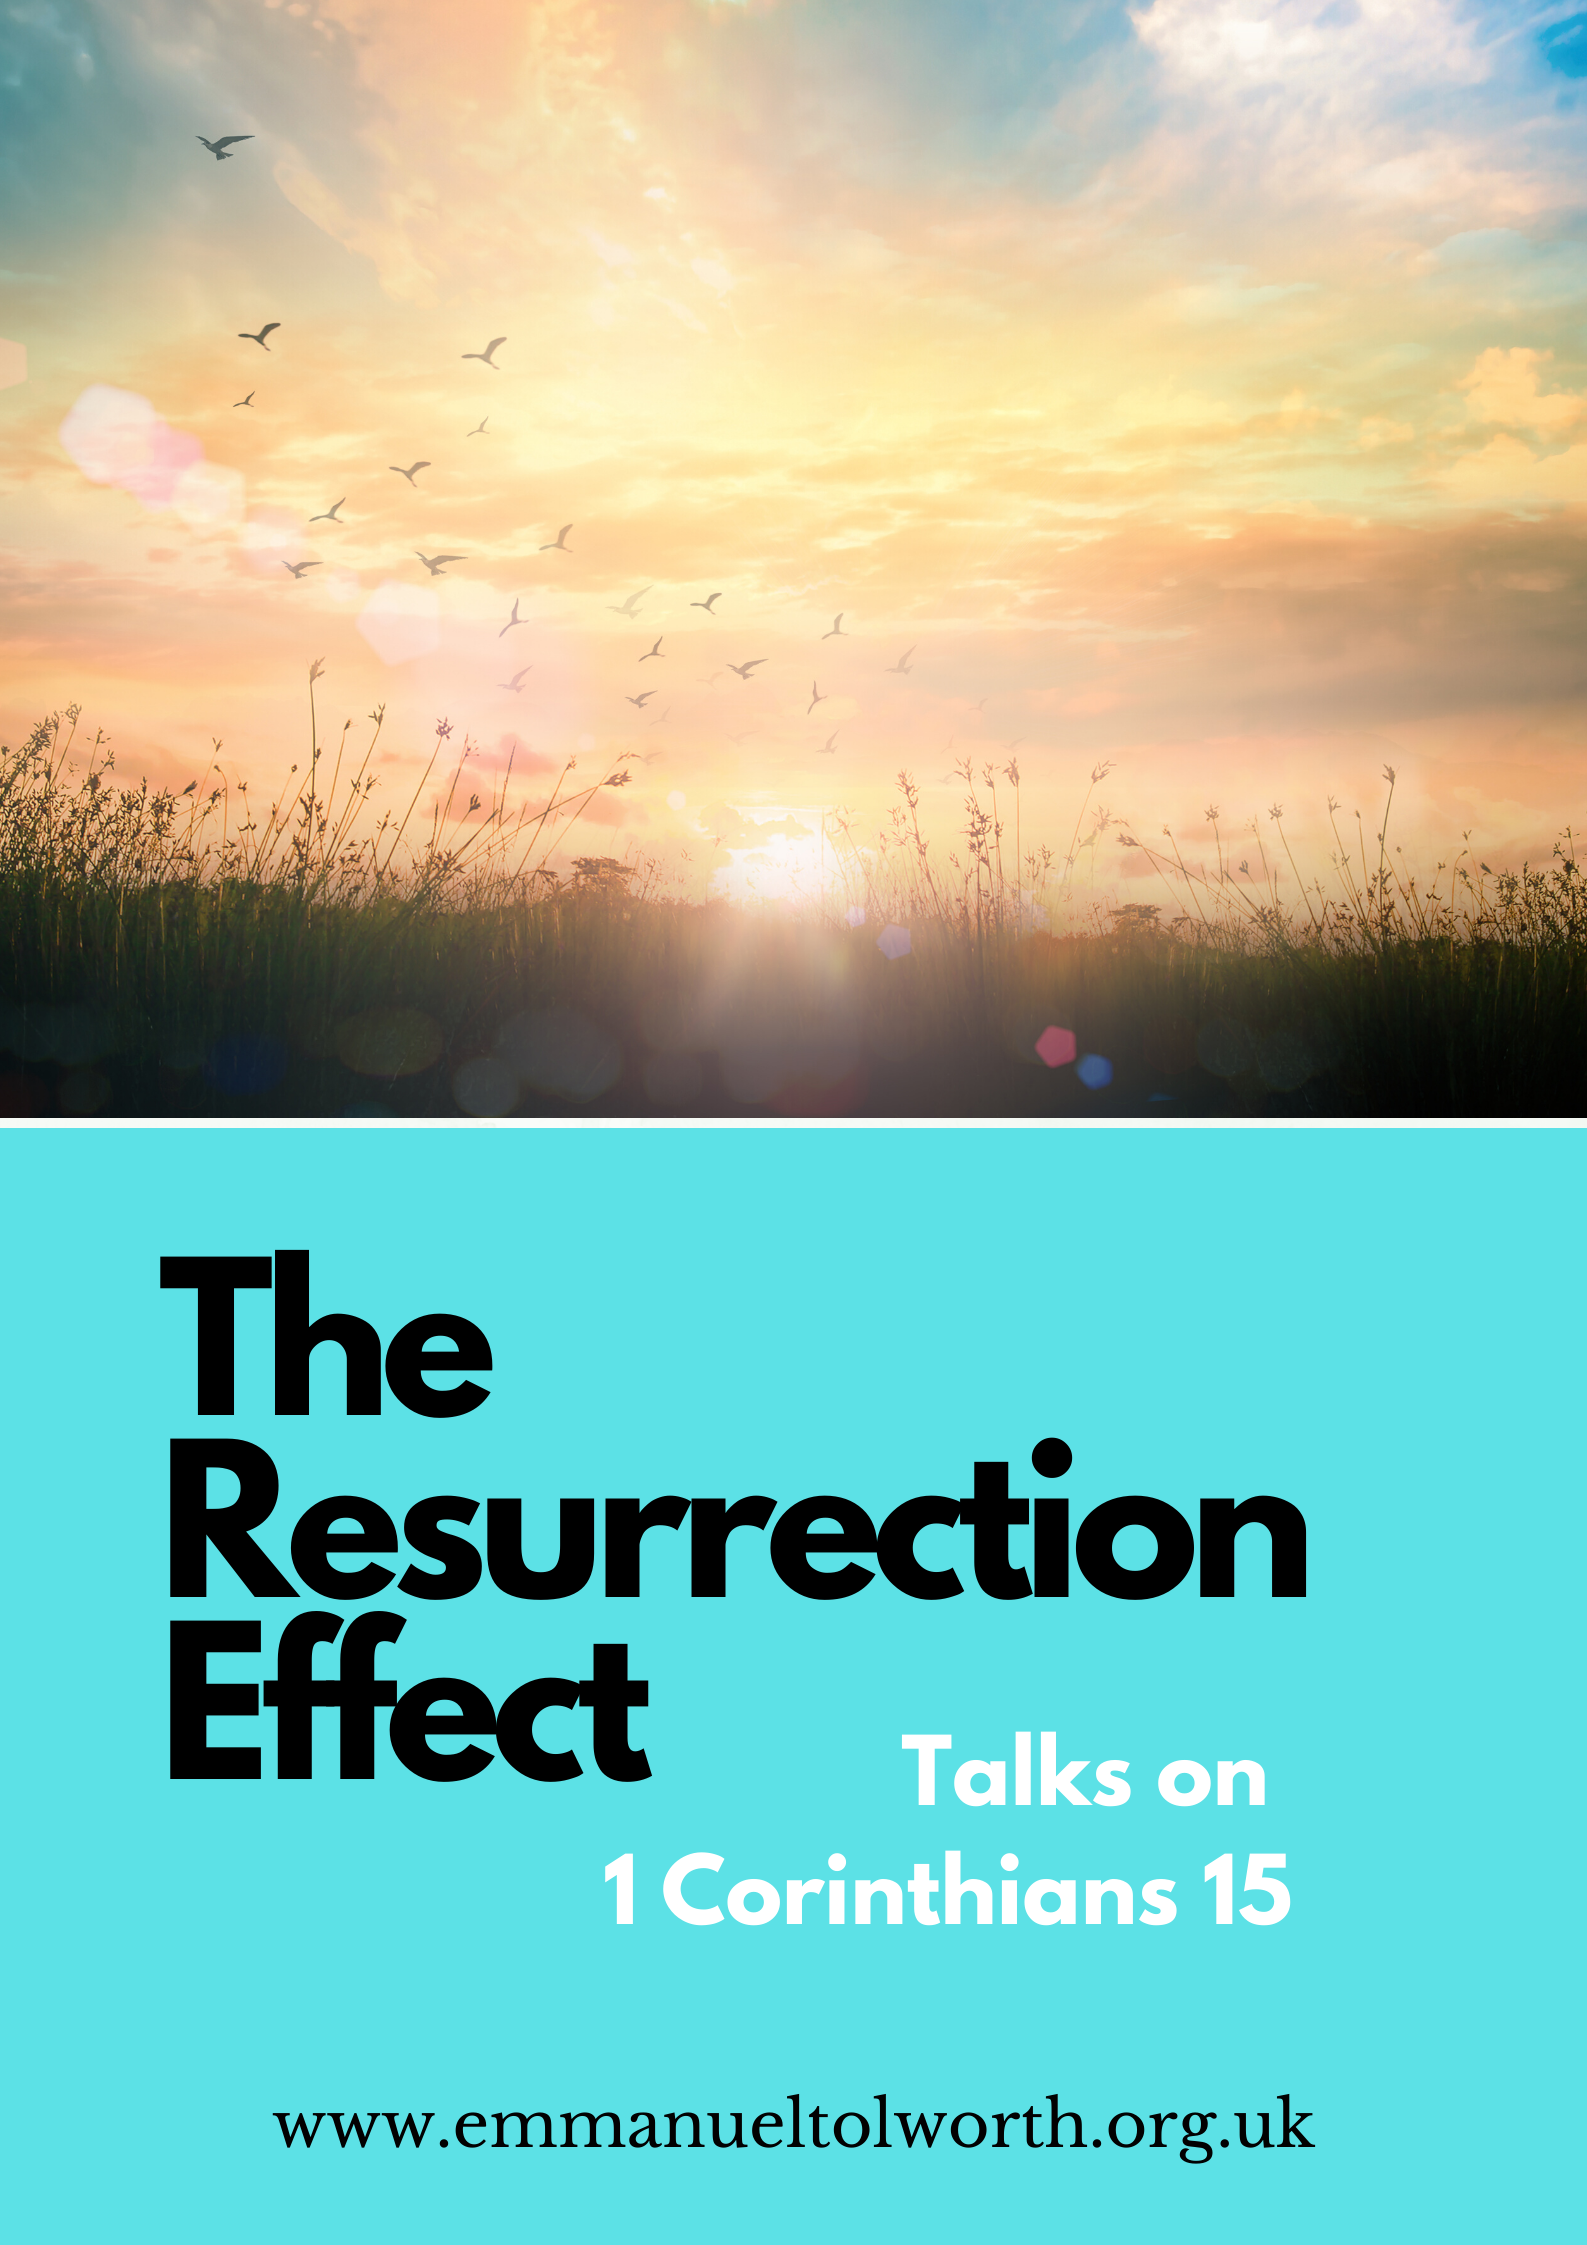 1 Corinthians 15:20-28 – The implications of the Resurrection number 3: God's Kingdom Will Come